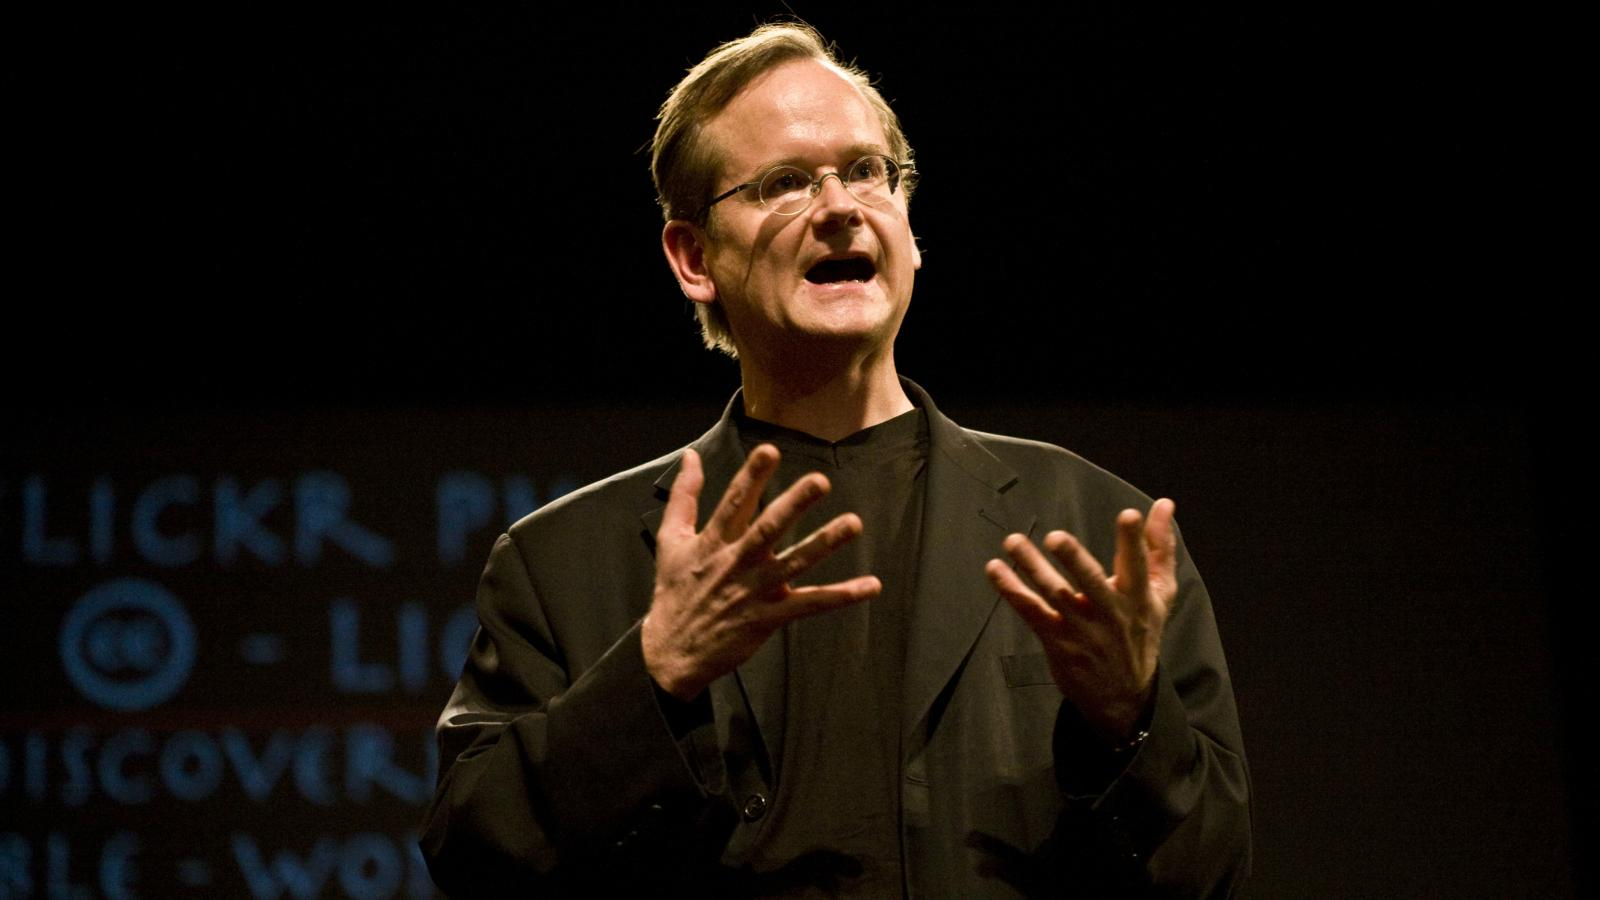 Larry Lessig - Roy L. Furman Professor of Law and Leadership at Harvard Law School